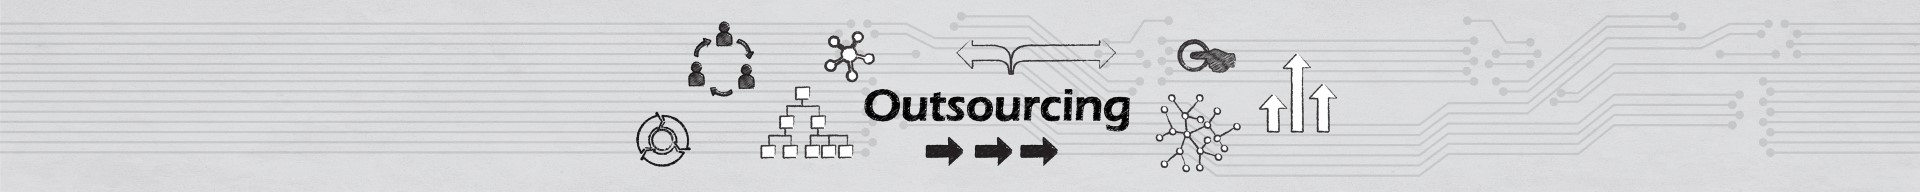 Outsourcing-מיקור חוץ